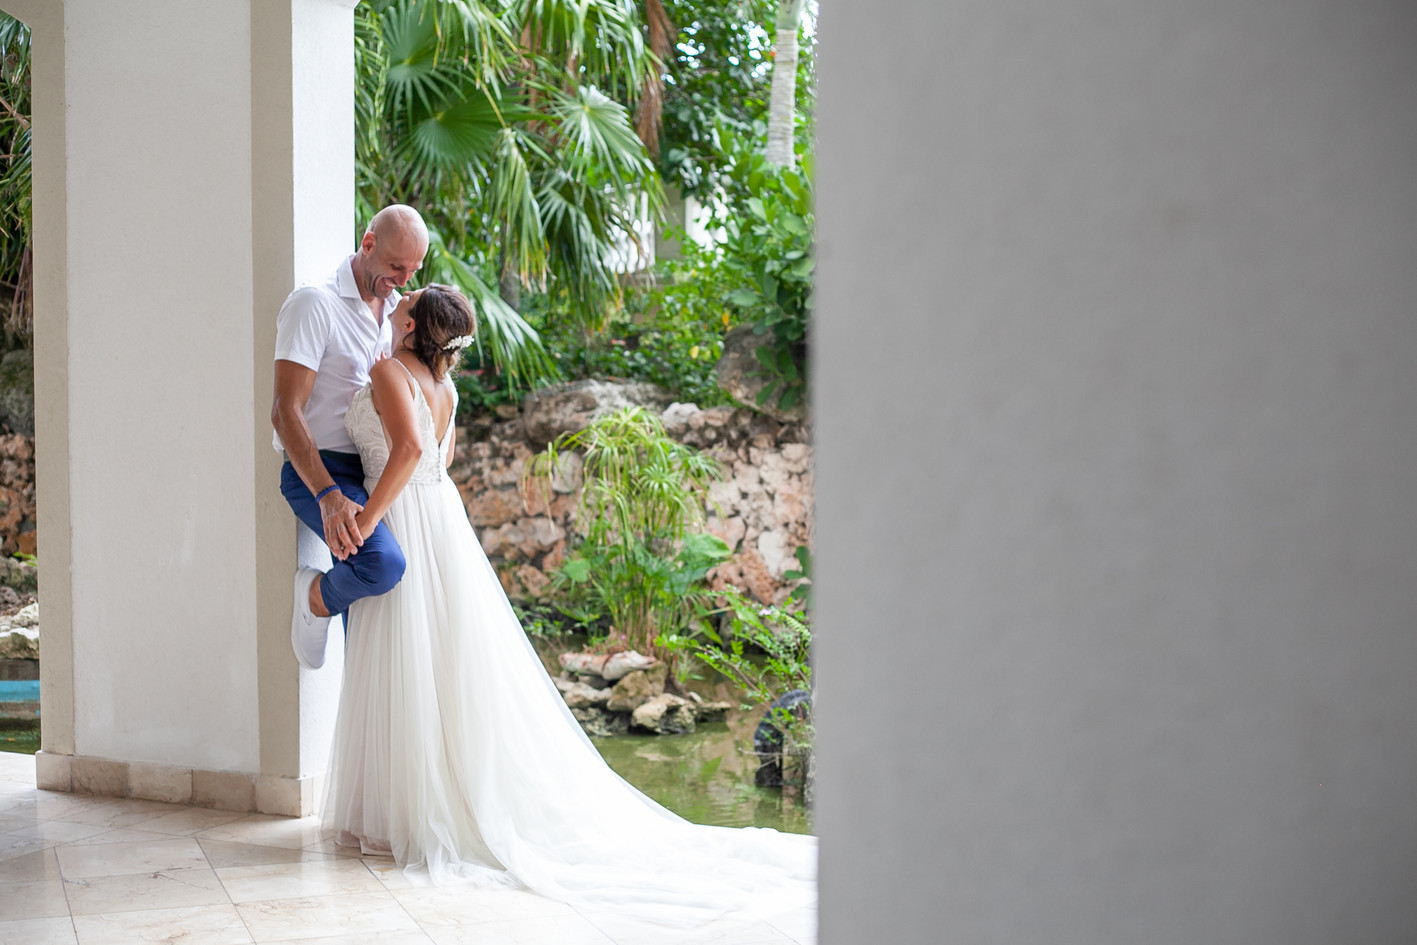 Husband and Wife married couple hold hands at a Cuba resort hallway. Couple staring into each others eyes.